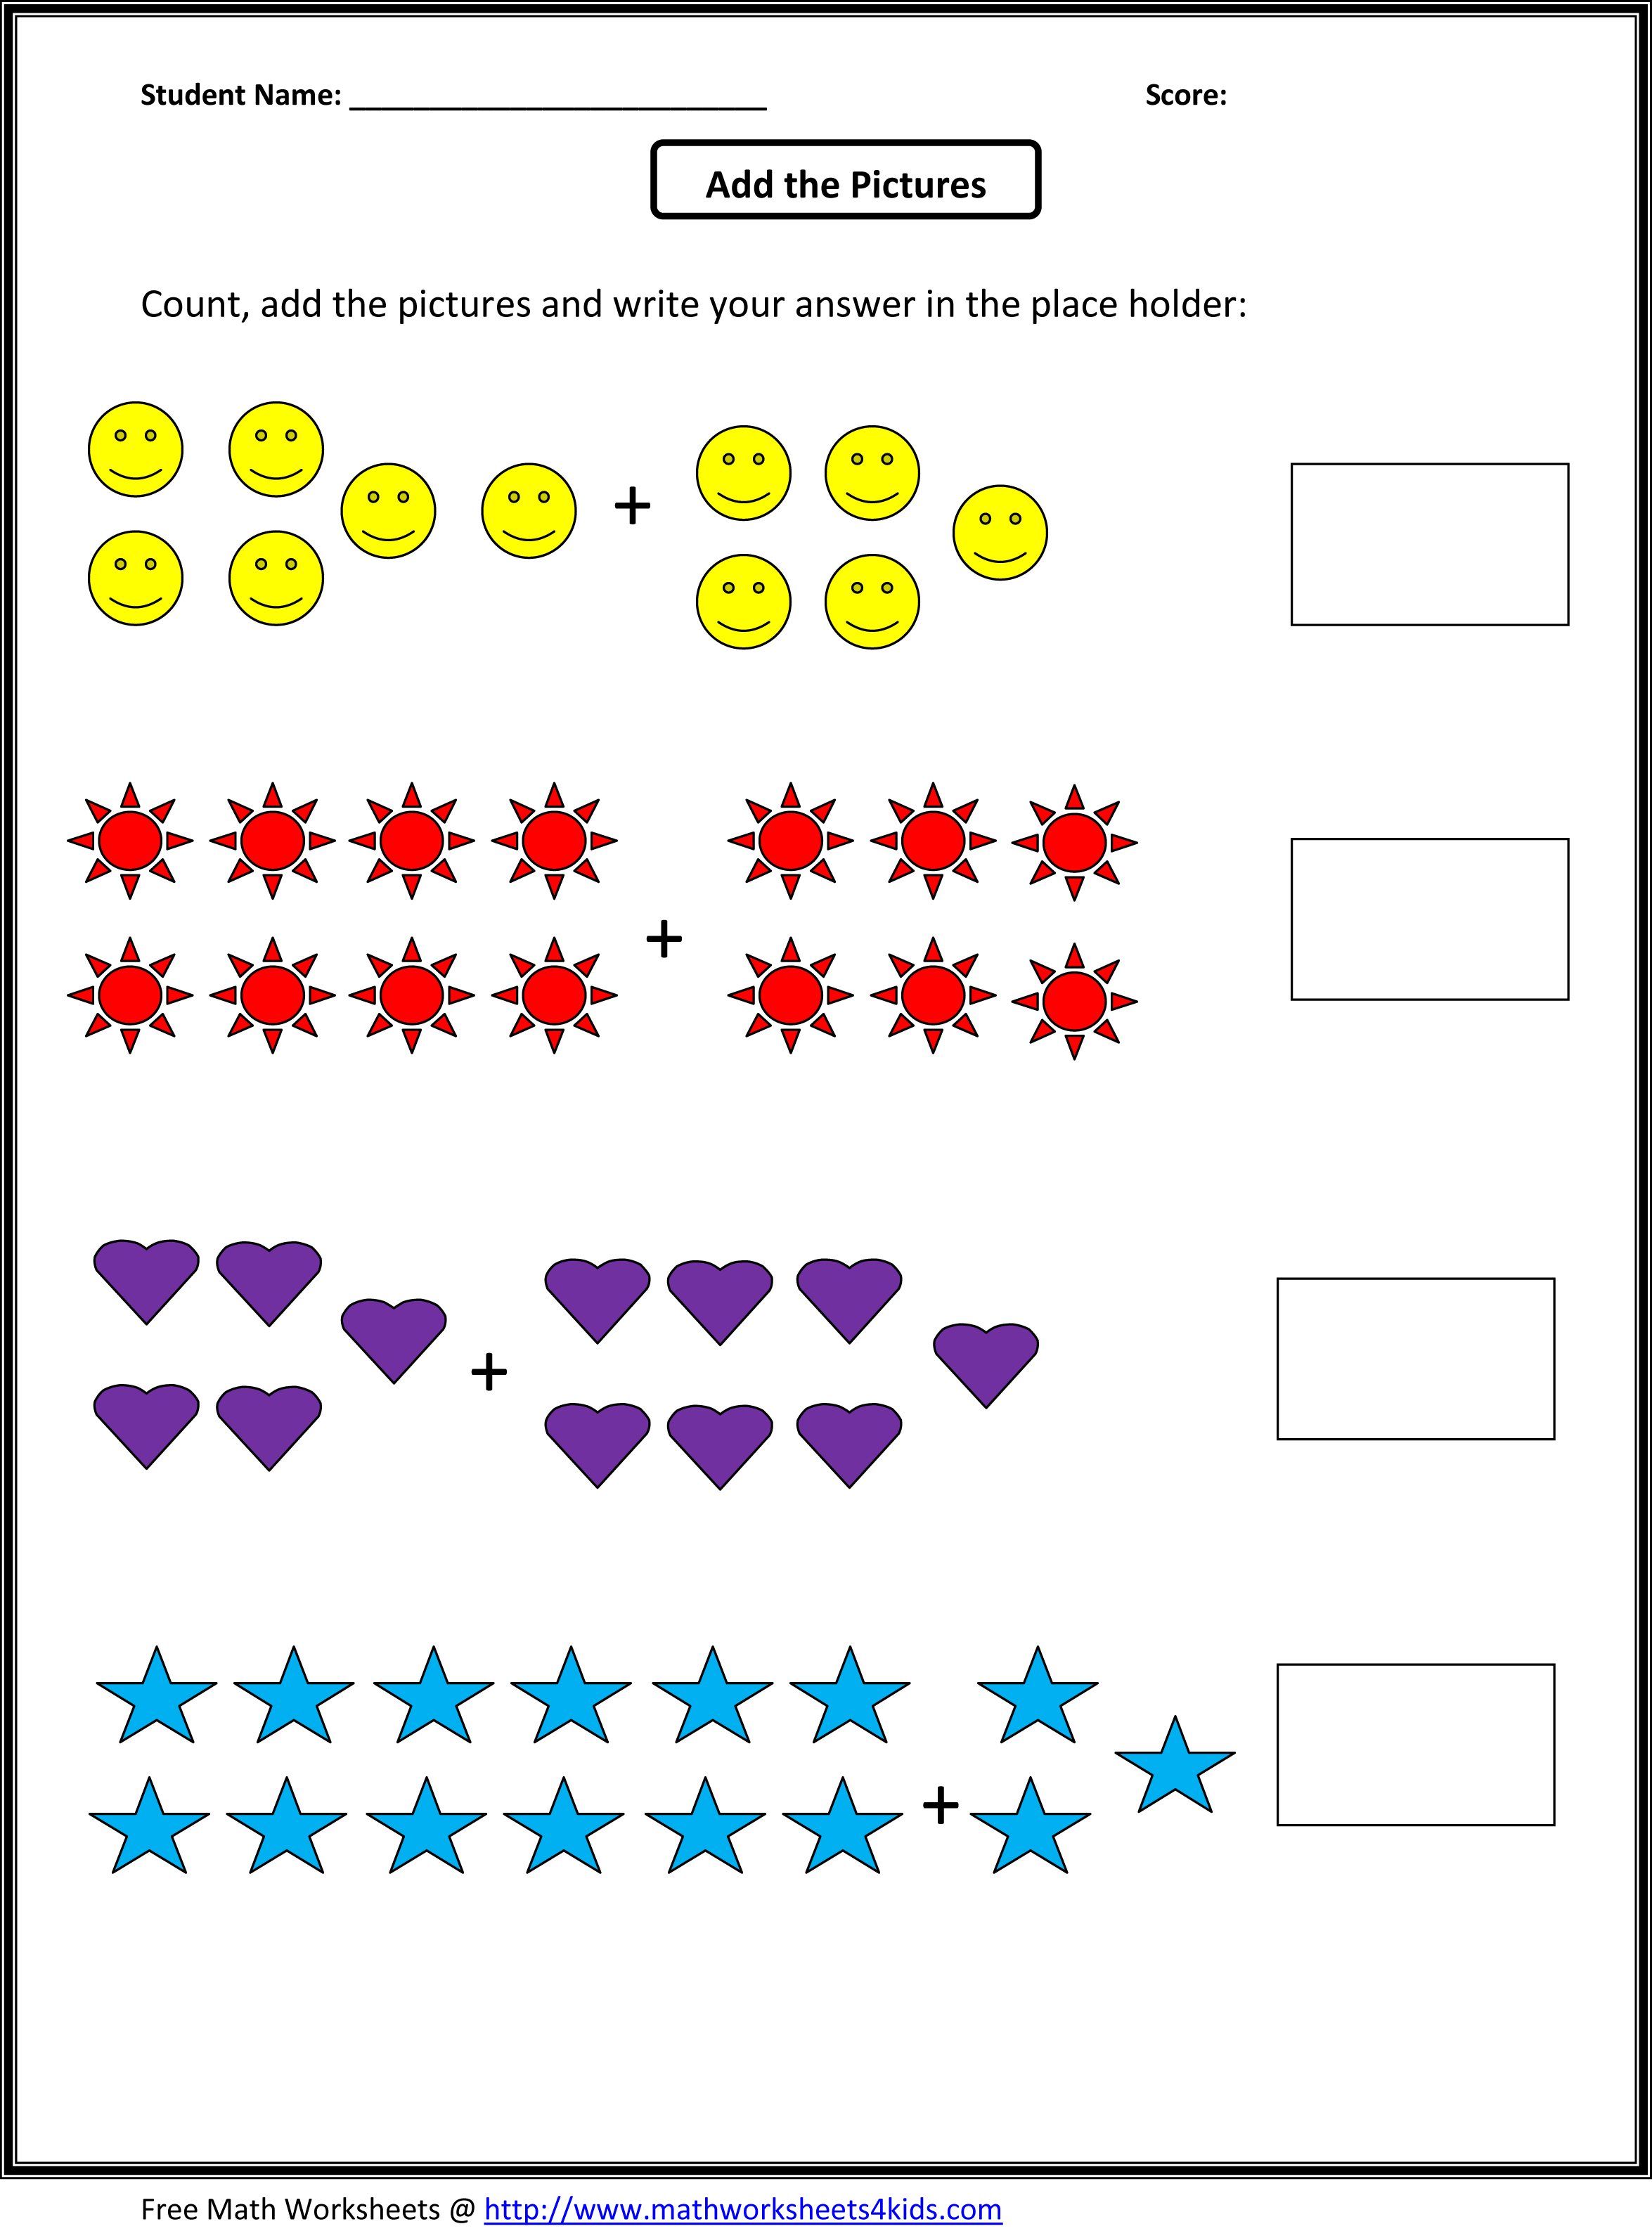 Proatmealus  Inspiring Grade  Maths Worksheet  Reocurent With Entrancing Math Worksheets For St Grade Free  Reocurent With Archaic Tion And Sion Worksheets Also Exel Worksheet In Addition Grade  Natural Science Worksheets And Fairness Worksheets For Kids As Well As Mental Maths Worksheets Ks Additionally Measurement Non Standard Units Worksheets From Reocurentcom With Proatmealus  Entrancing Grade  Maths Worksheet  Reocurent With Archaic Math Worksheets For St Grade Free  Reocurent And Inspiring Tion And Sion Worksheets Also Exel Worksheet In Addition Grade  Natural Science Worksheets From Reocurentcom